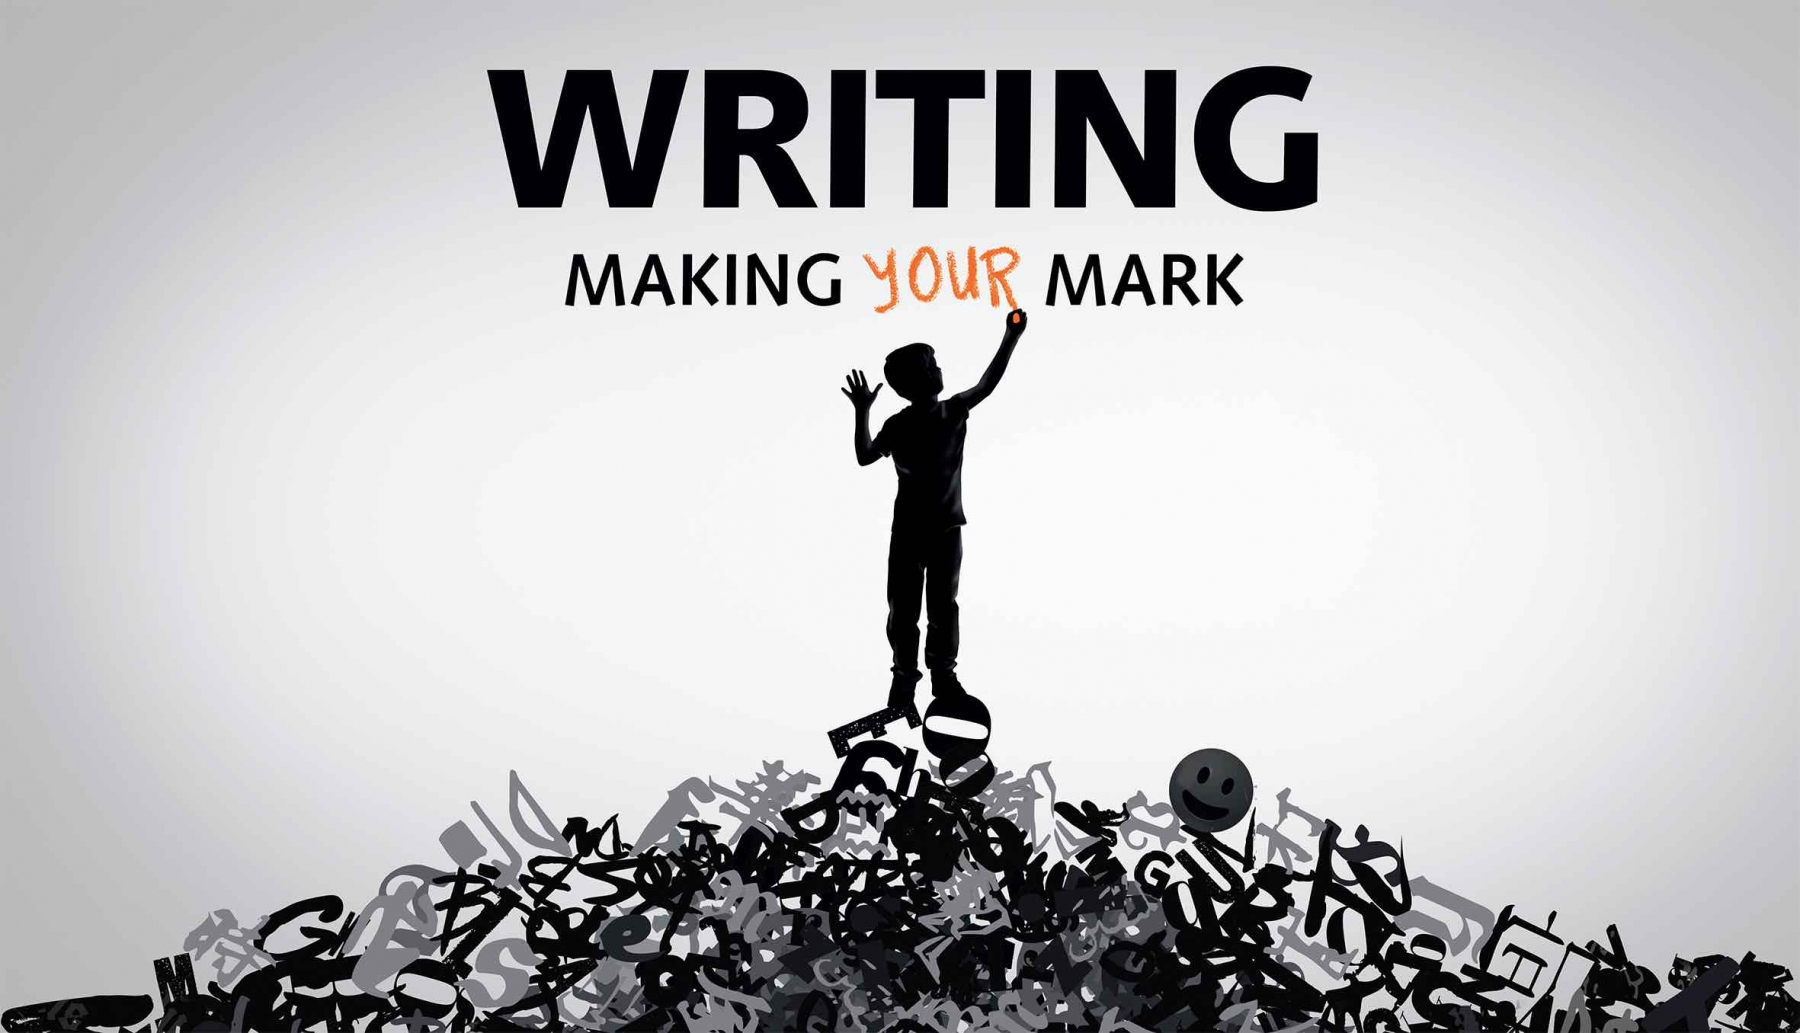 Writing - Making Your Mark at the British Library